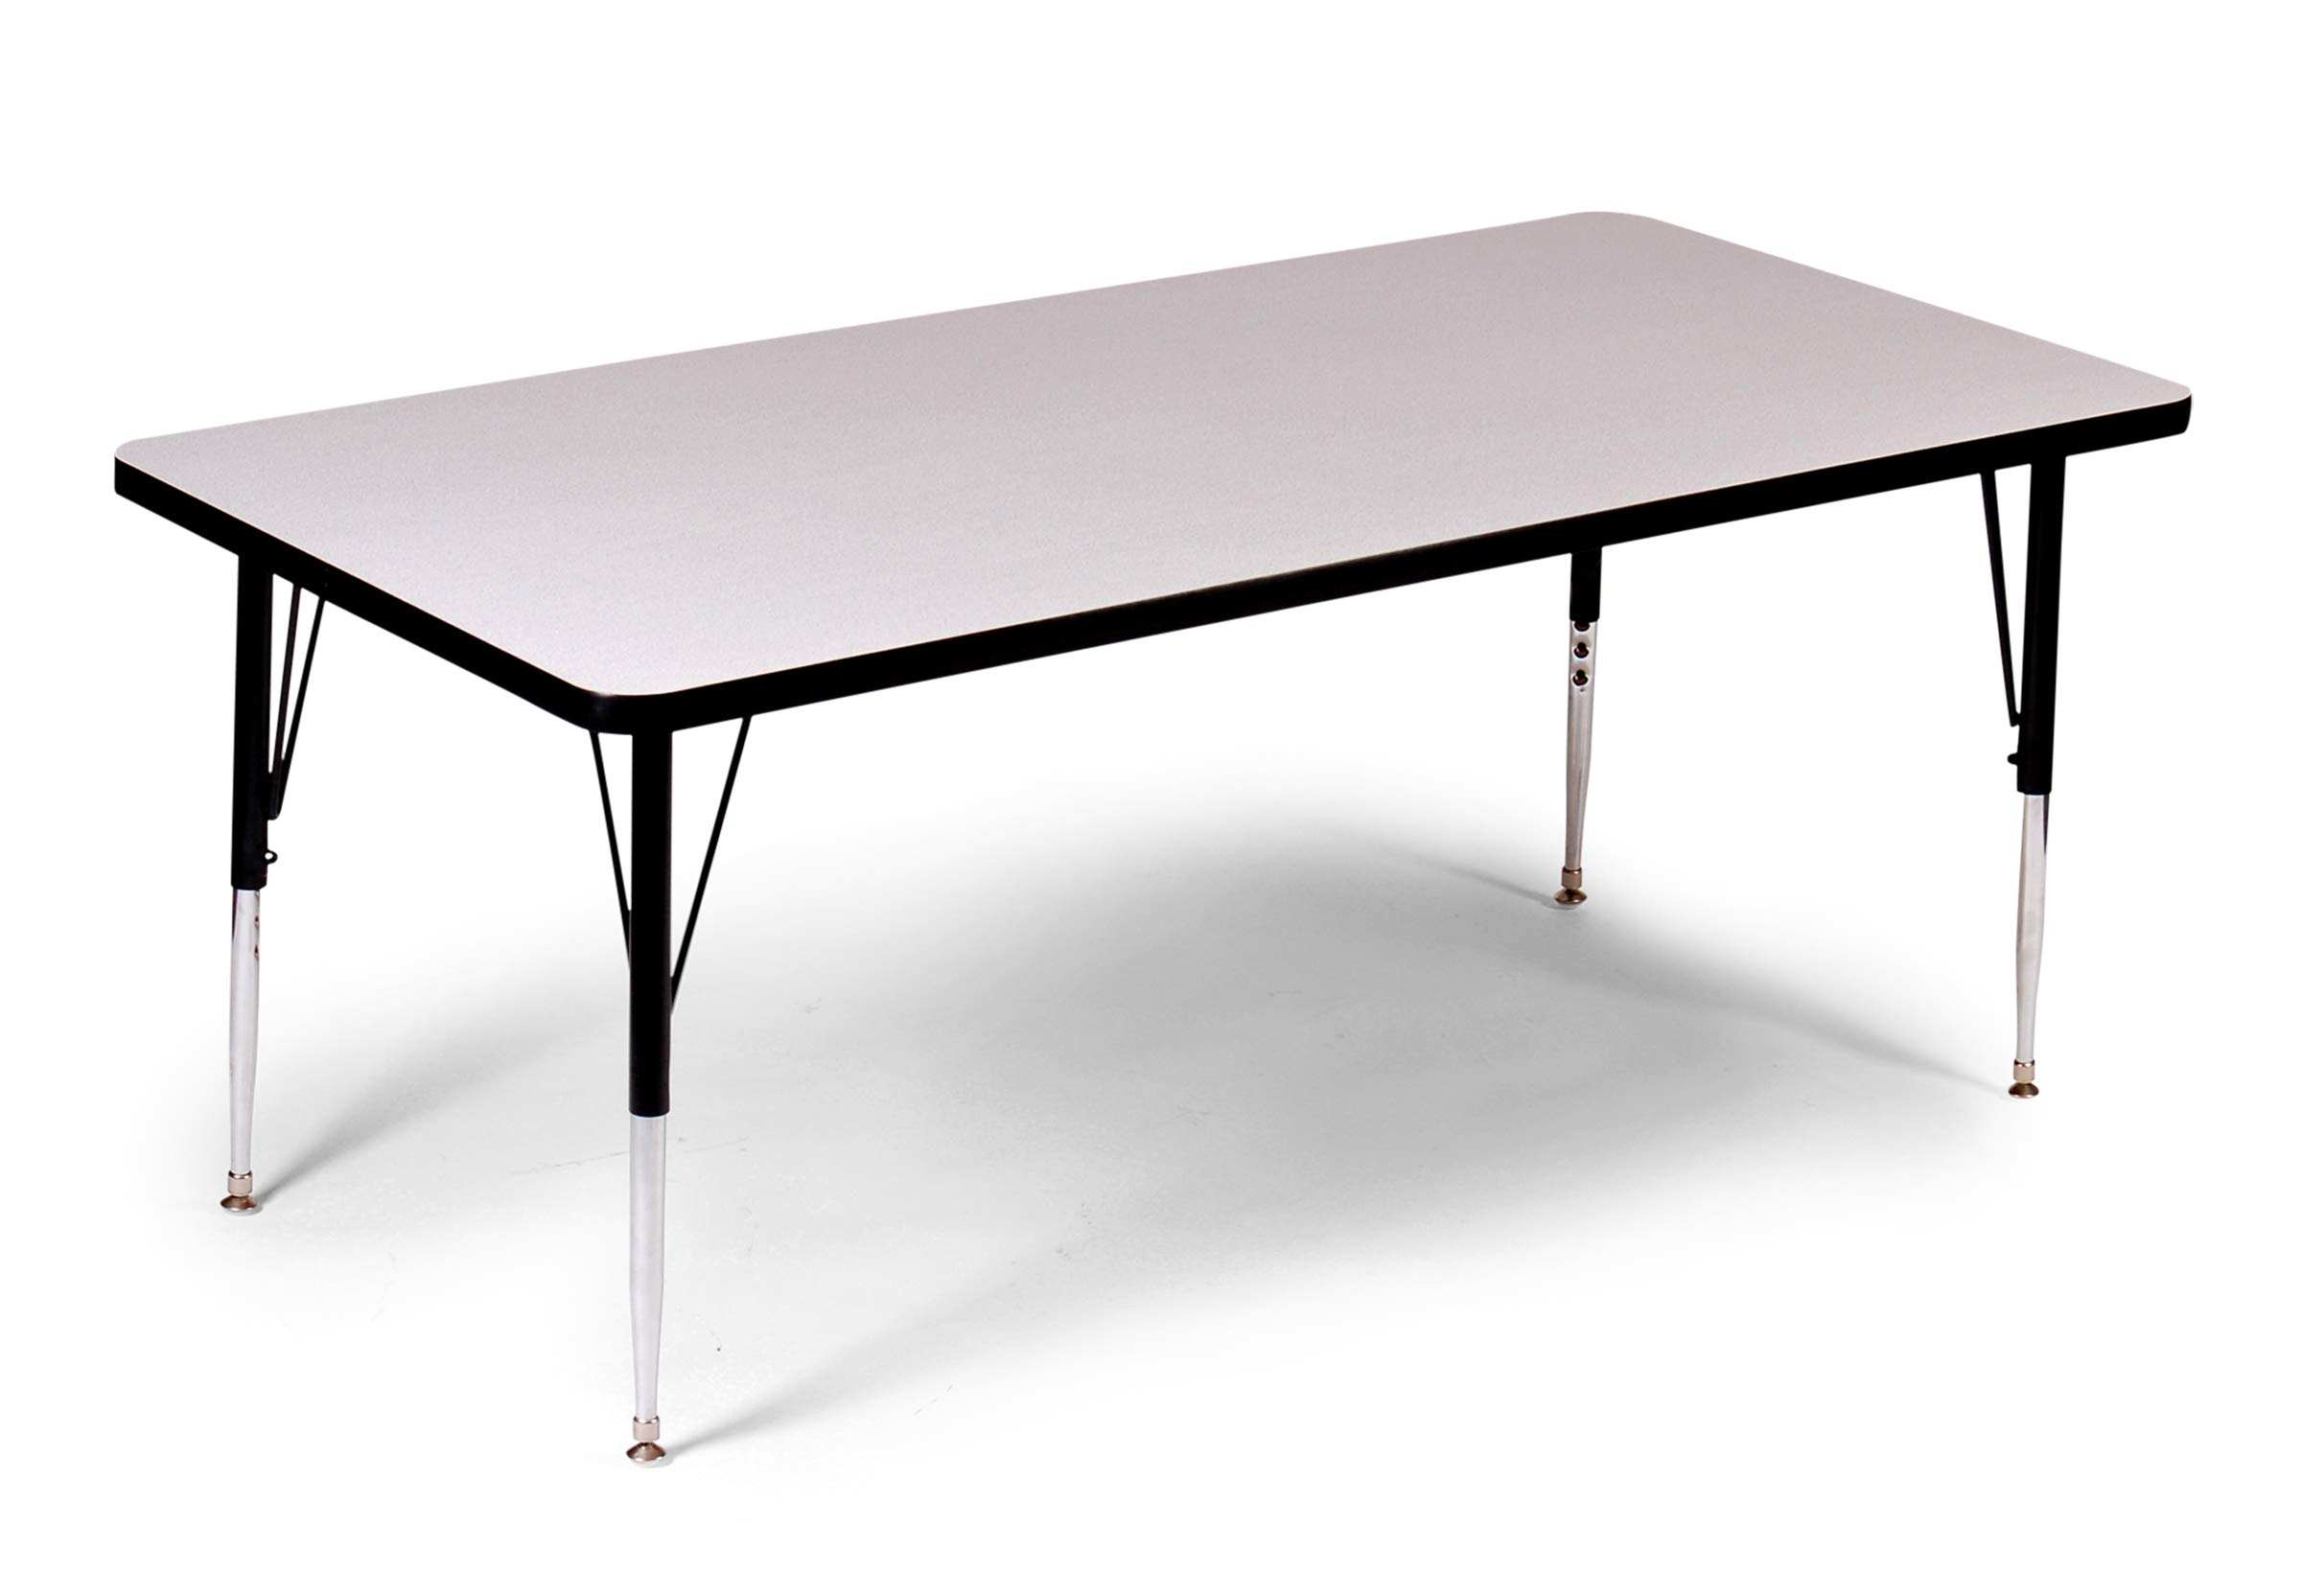 Correll A2460-REC-15 Rectangular Top Activity Table 24'' x 60'' Gray Granite by Correll